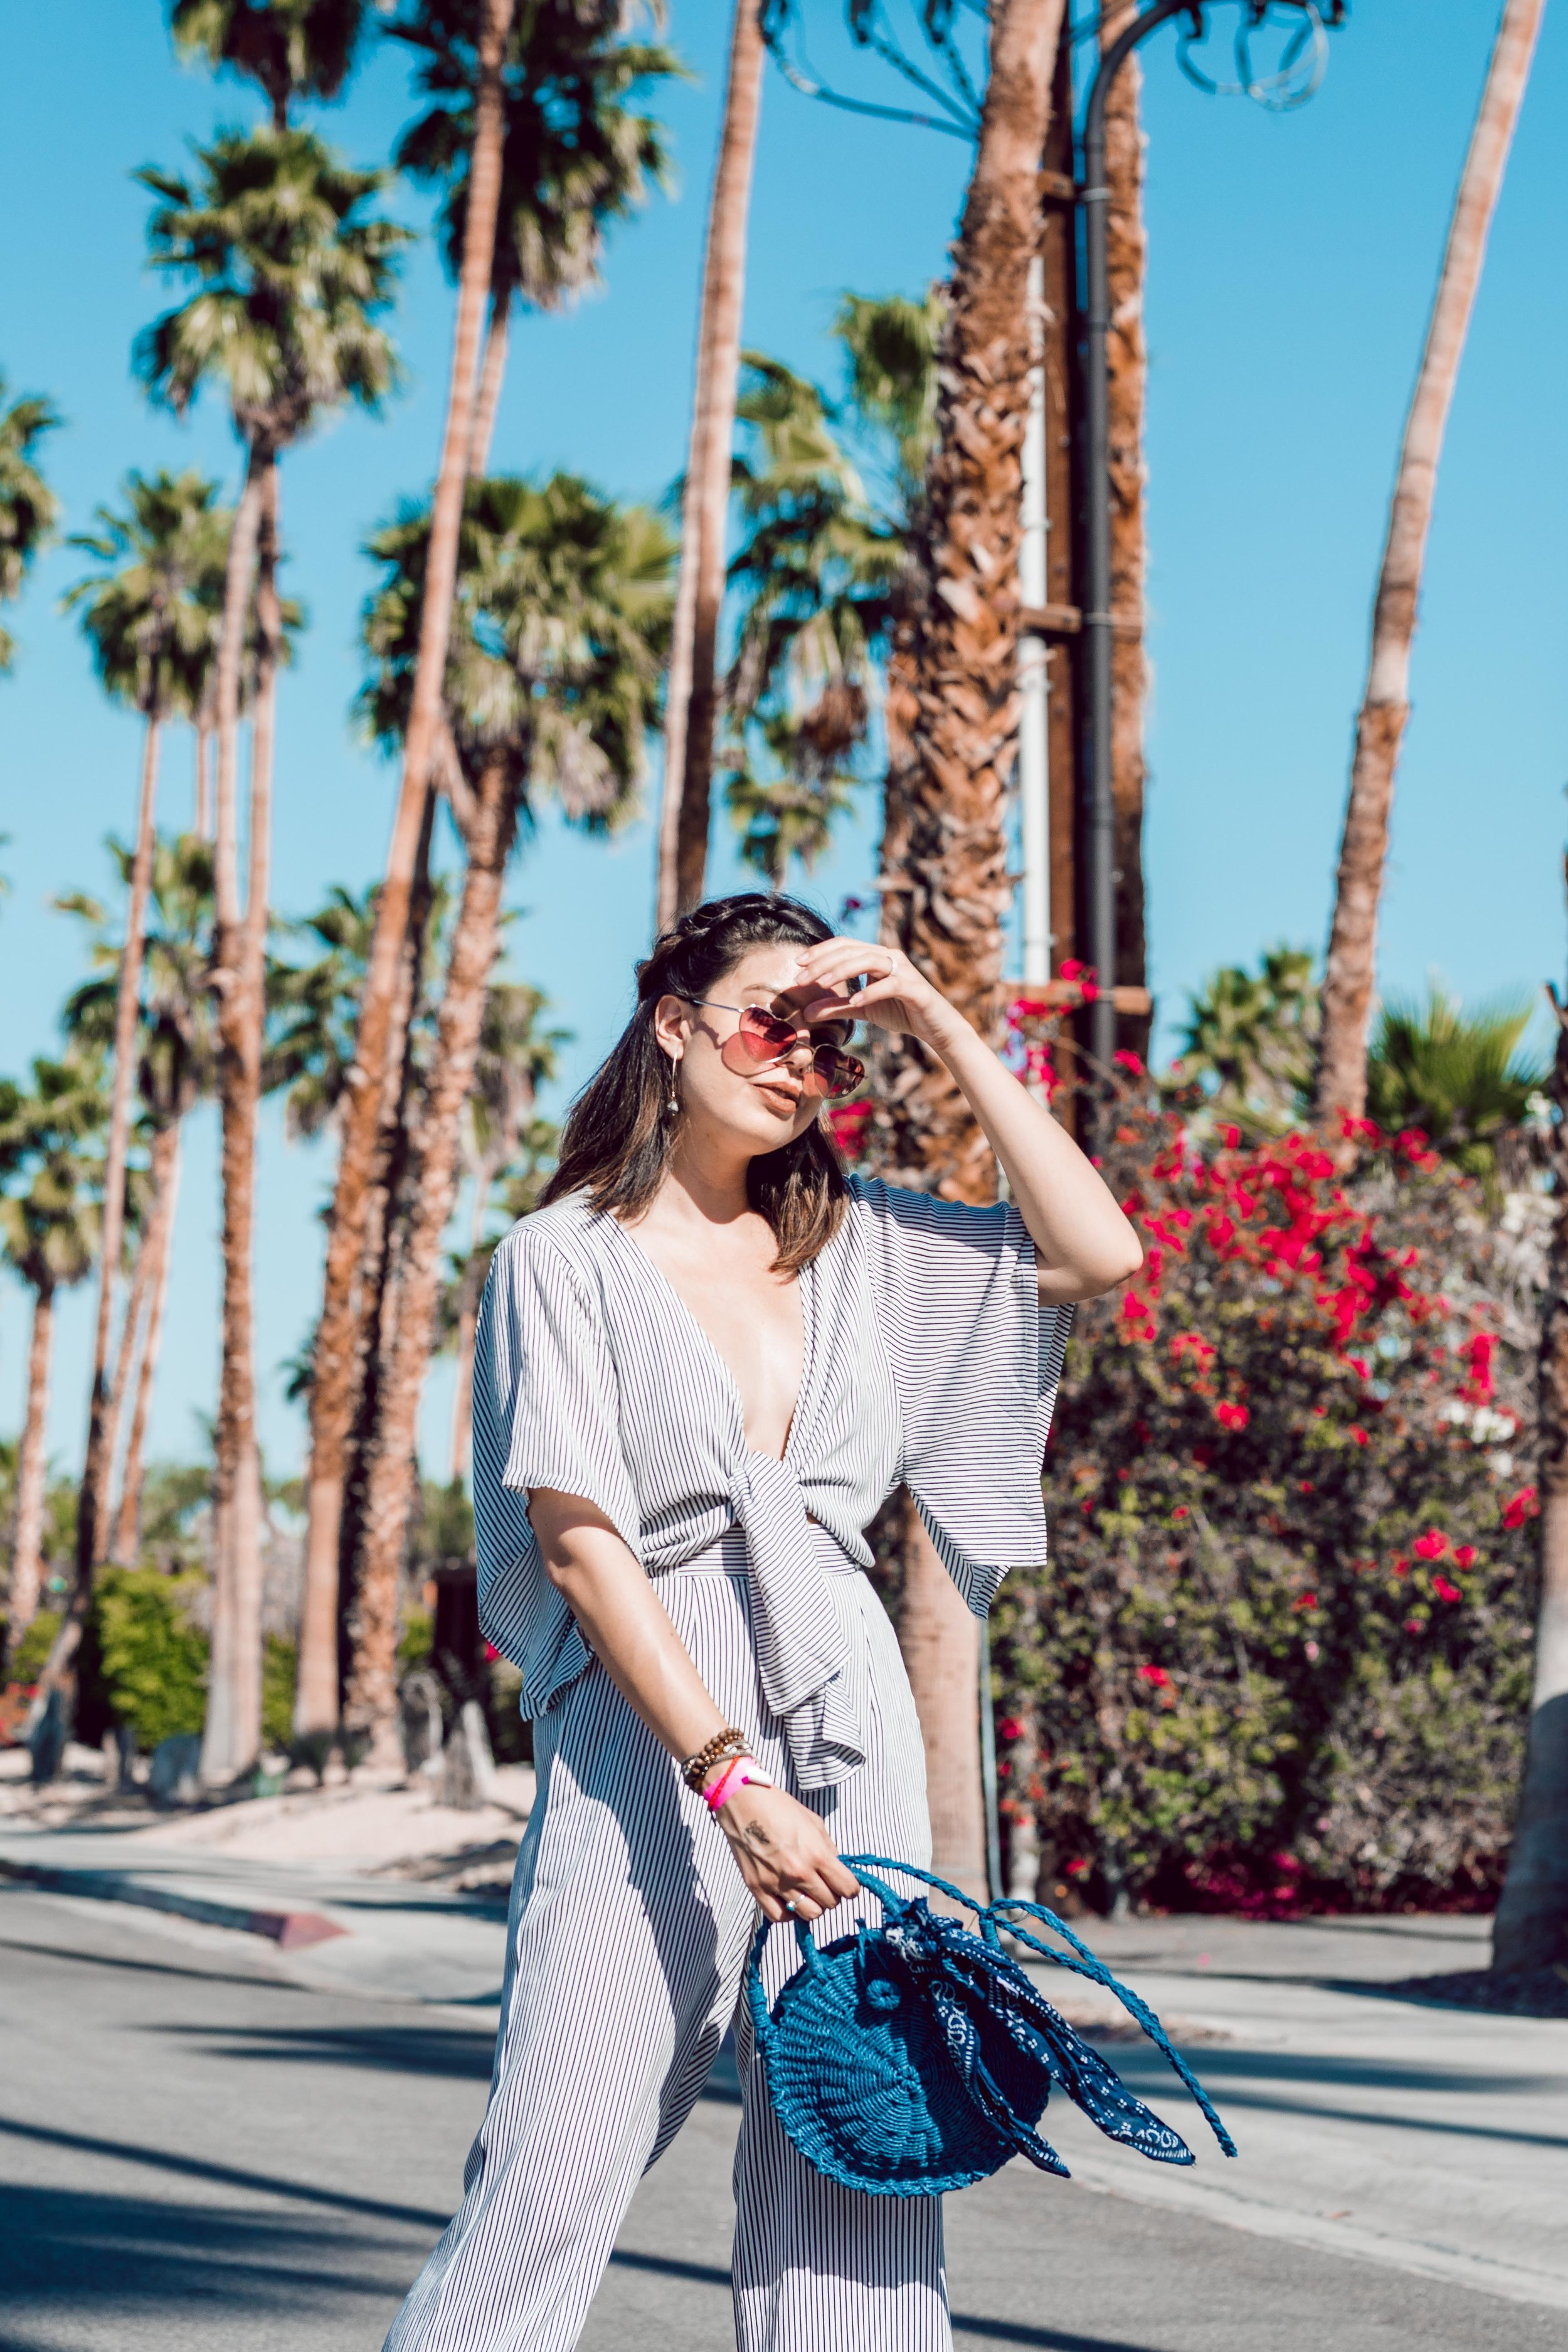 Rachel Off Duty: How to Style Patterned Jumpsuit for Summer